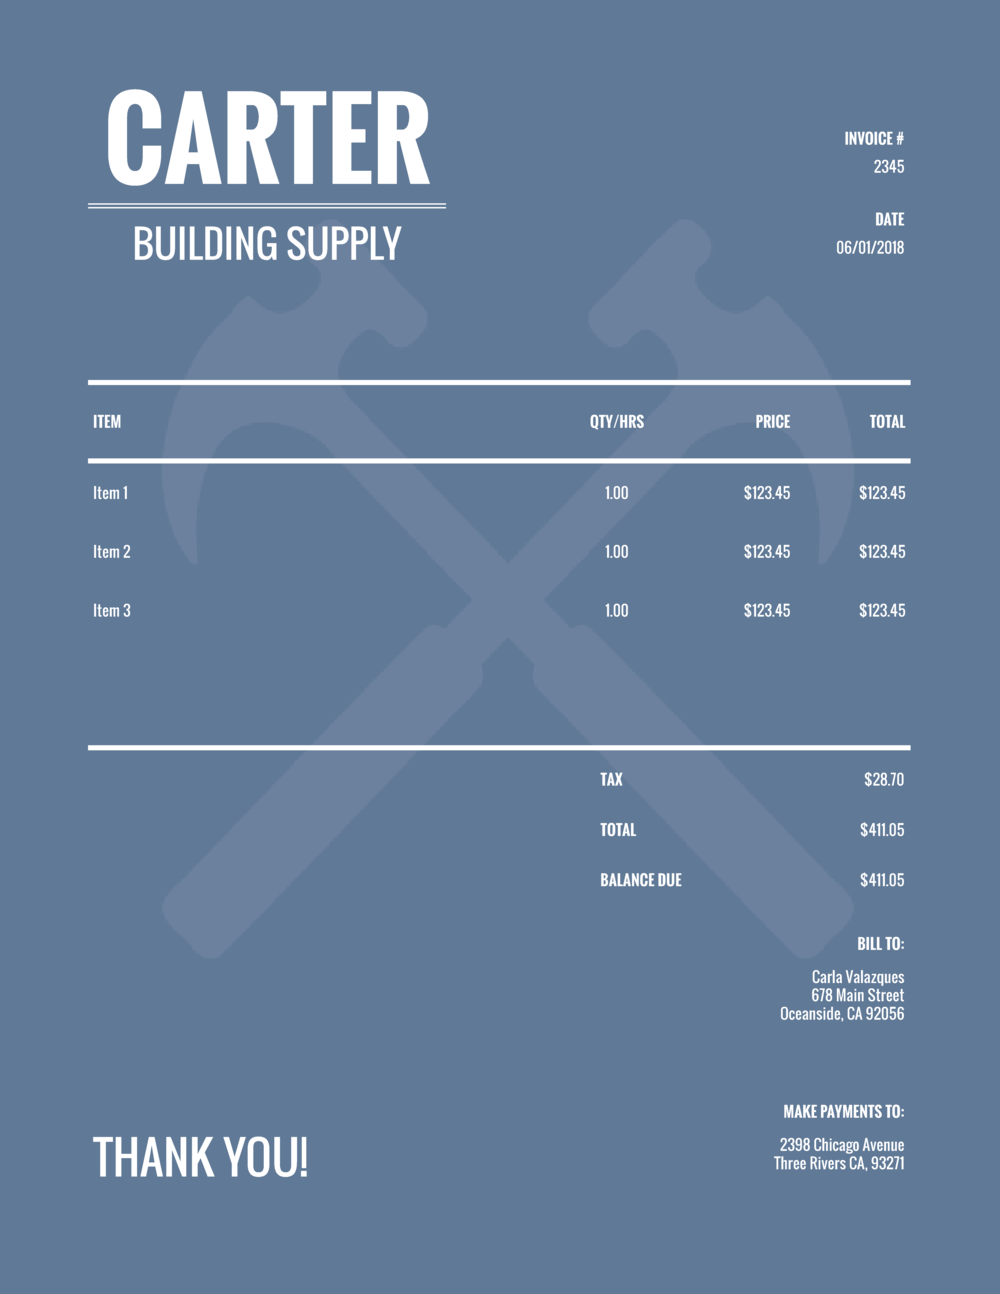 """Carter Building Supply"" Invoice Template from formfarm.io"